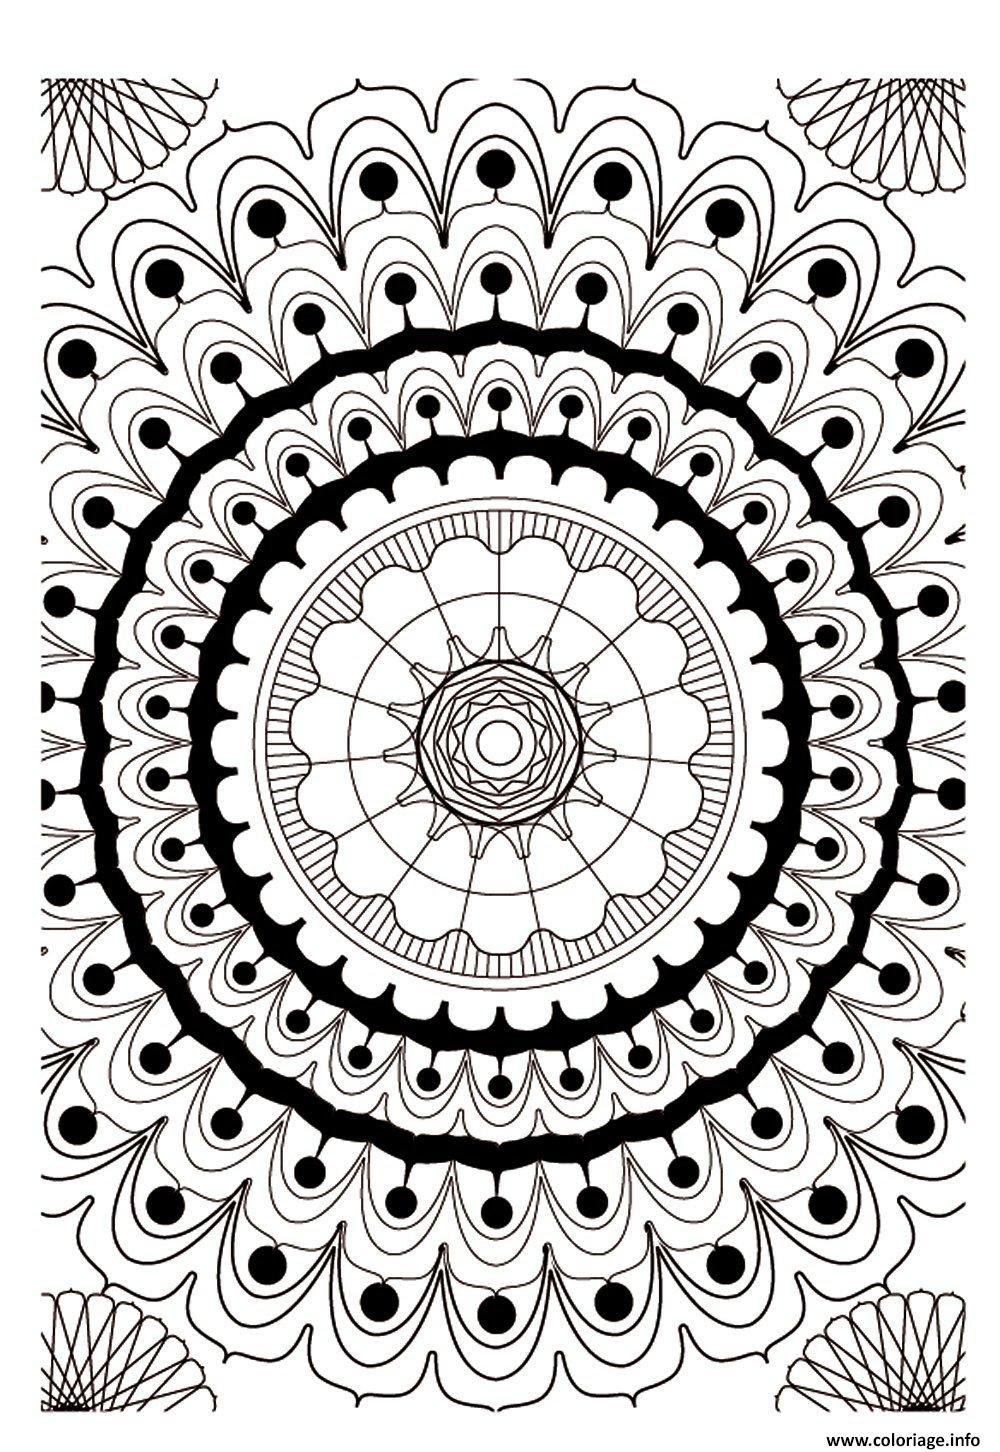 Coloriage Art Therapie 16 Jecoloriecom